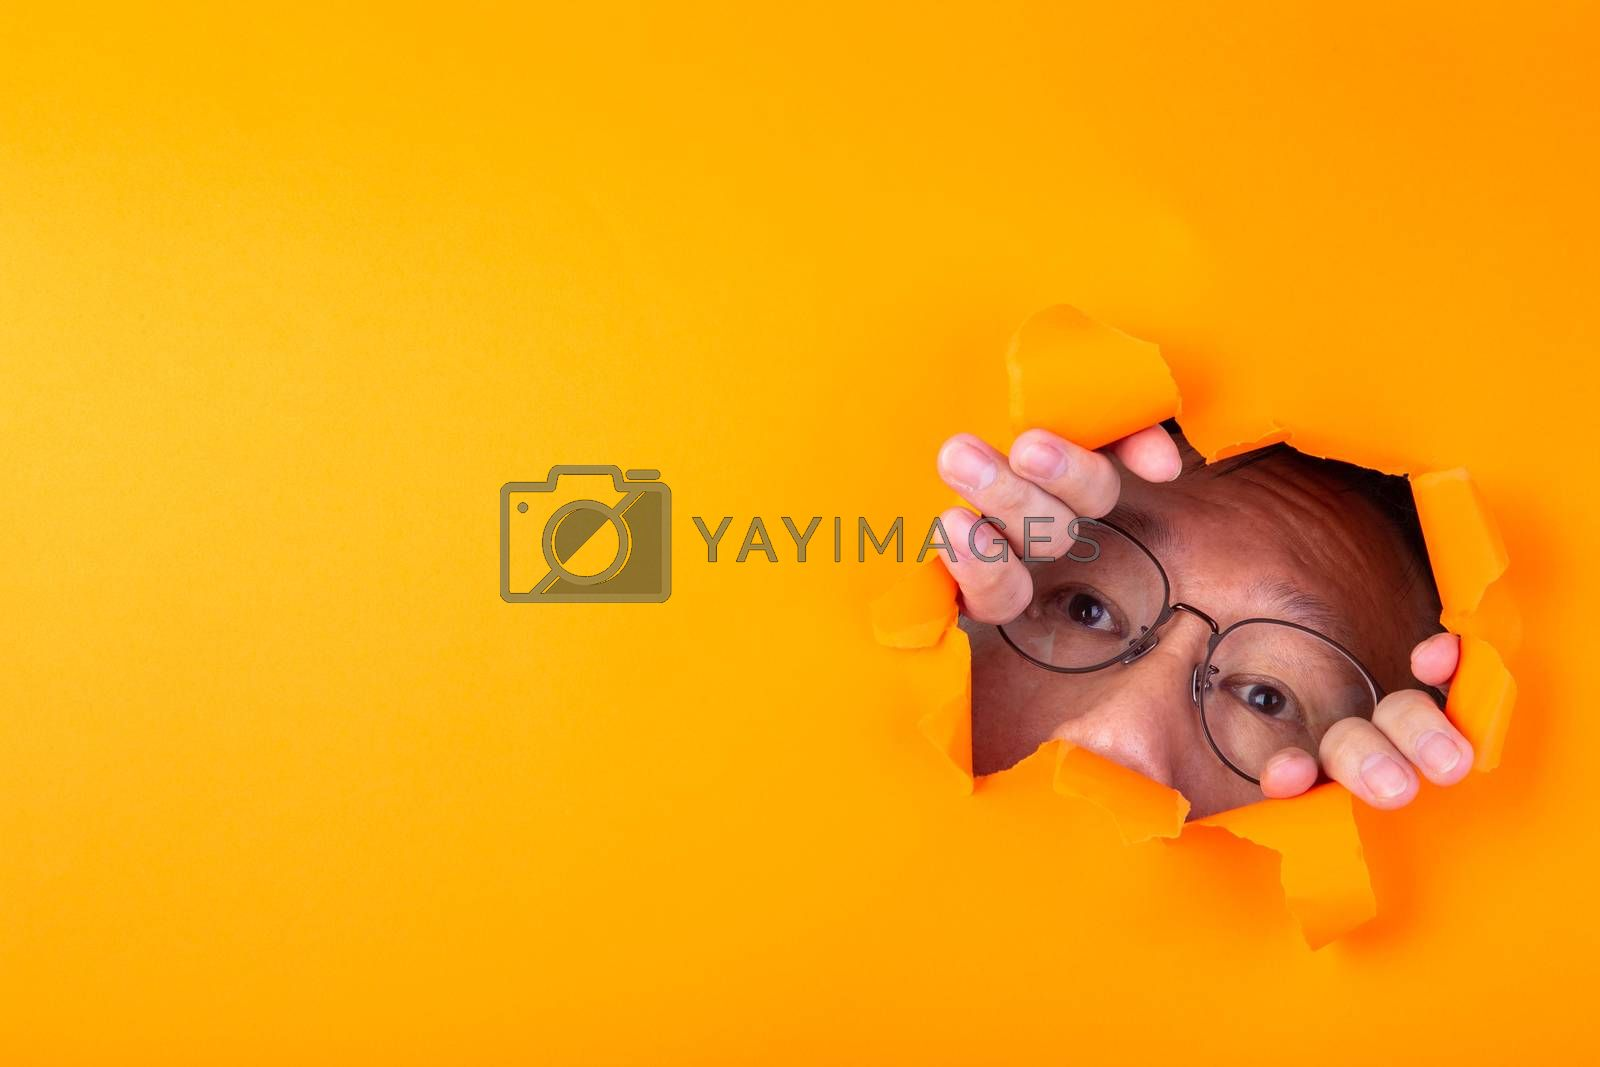 The man with spectacle peeks through a cut hole in the orange paper background.